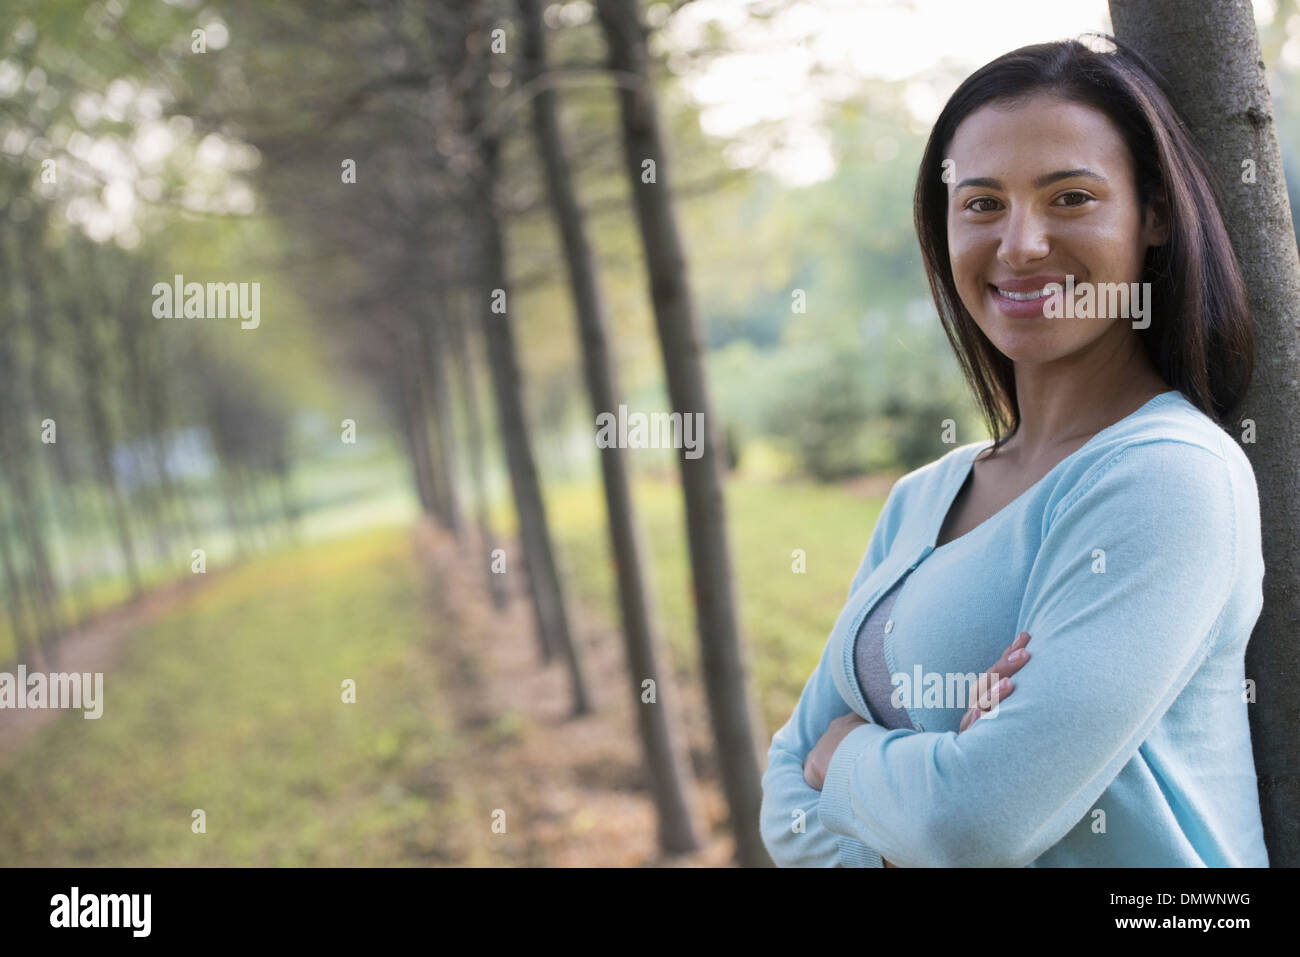 A woman with arms folded leaning against a tree. - Stock Image